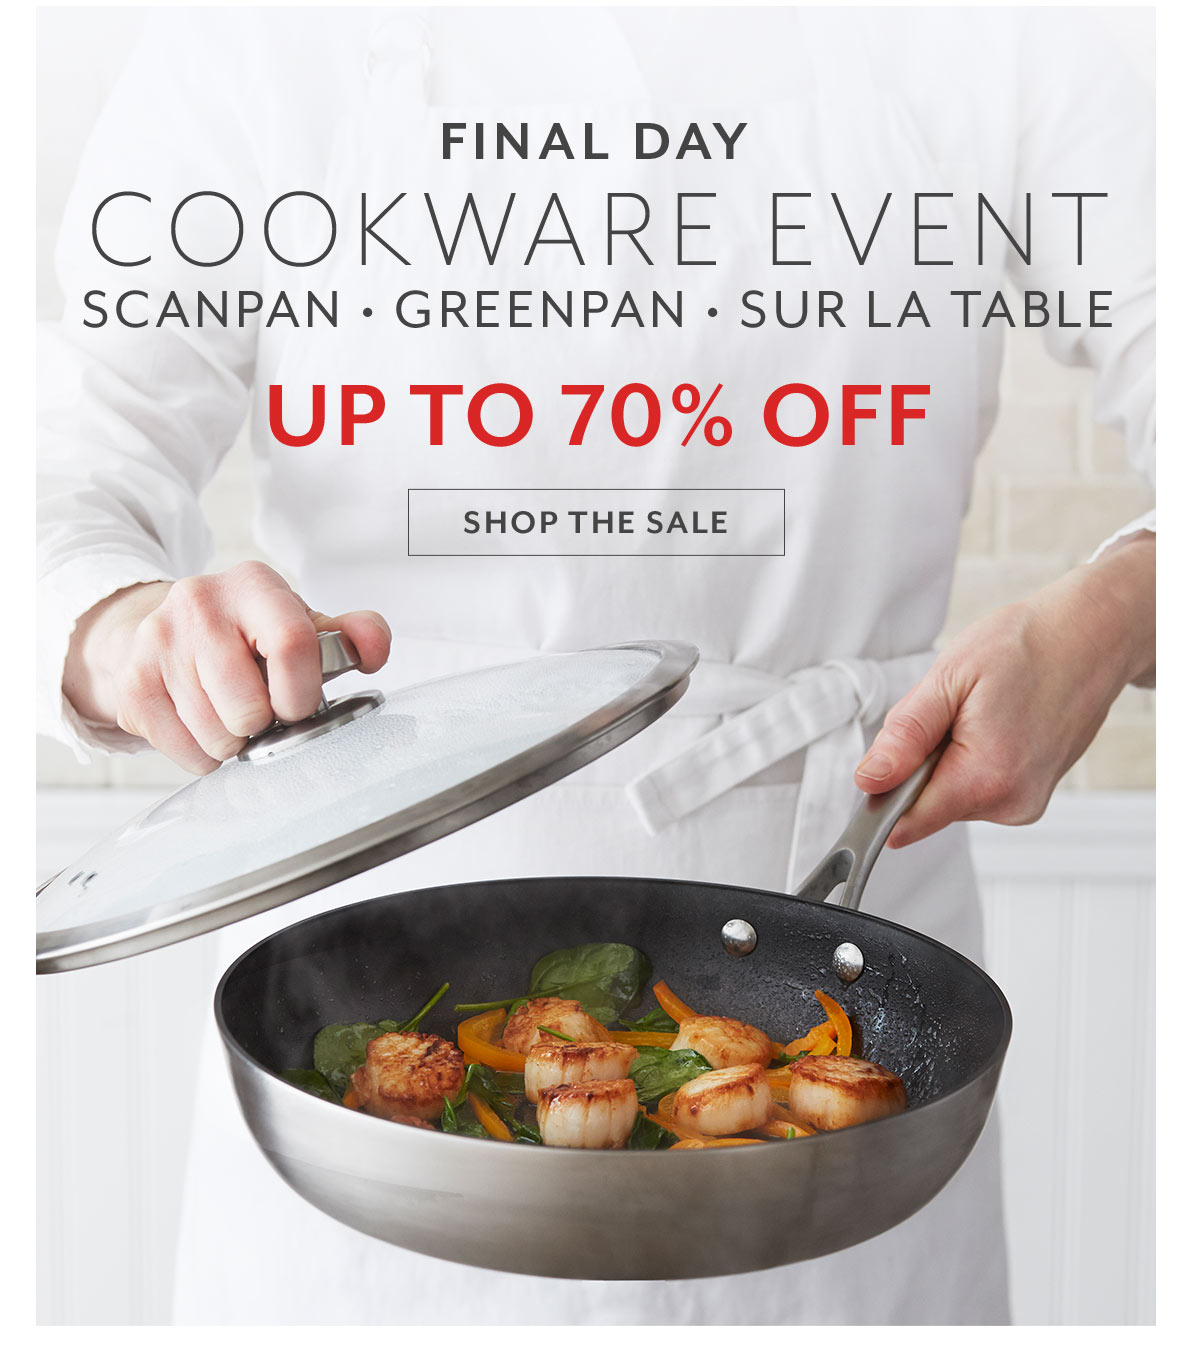 Cookware Event